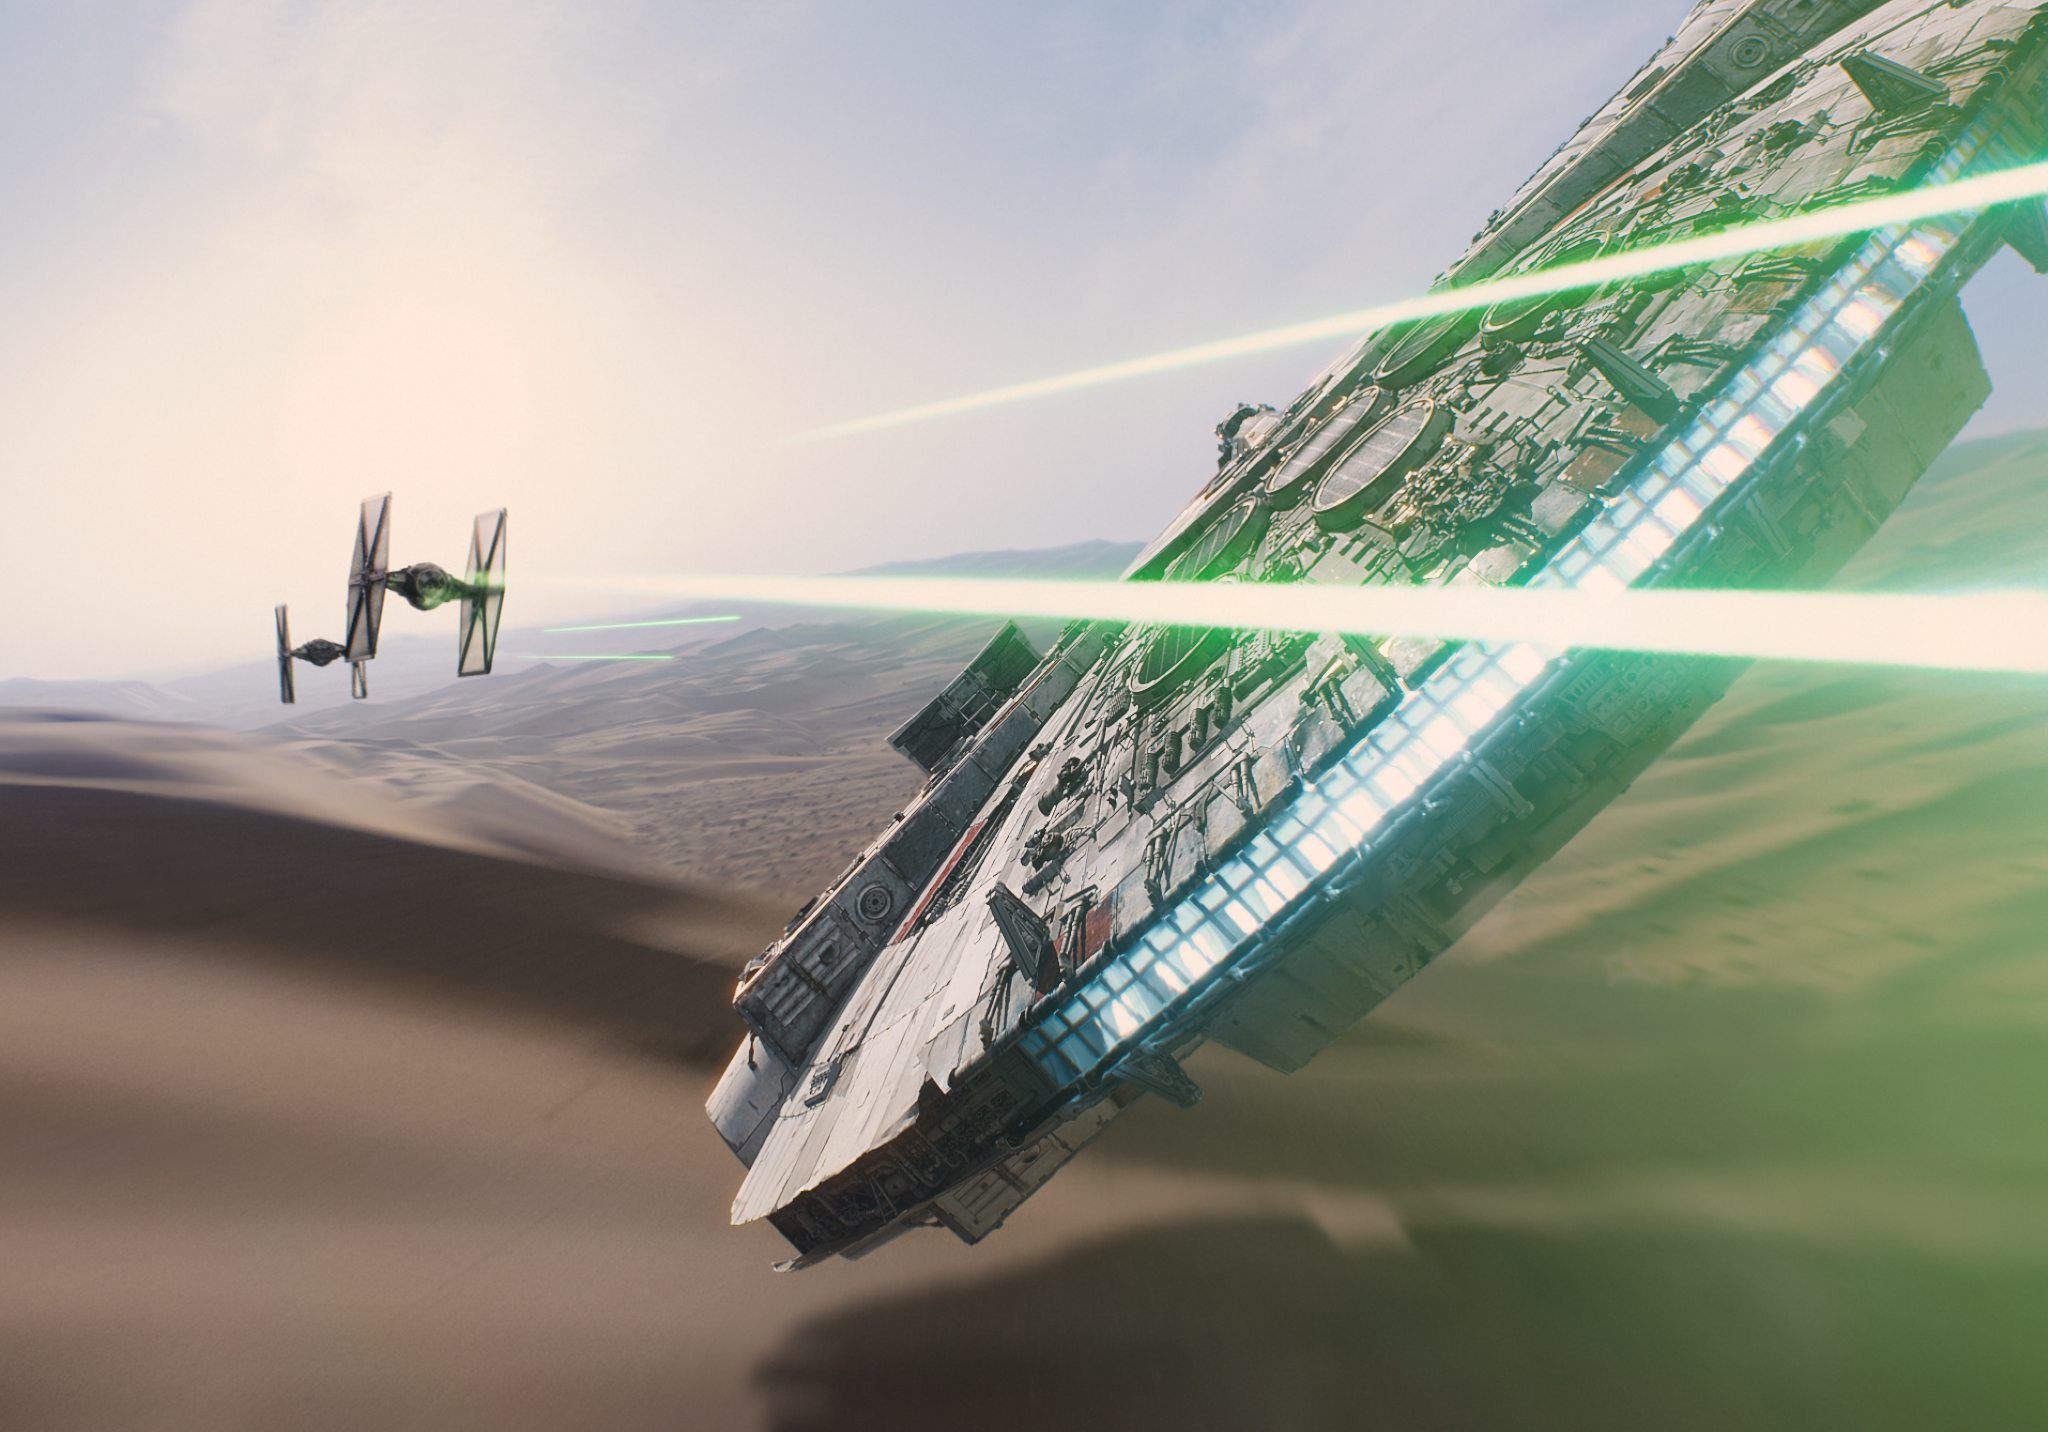 A Shot-by-Shot Dissection of the Star Wars: The Force Awakens Trailer